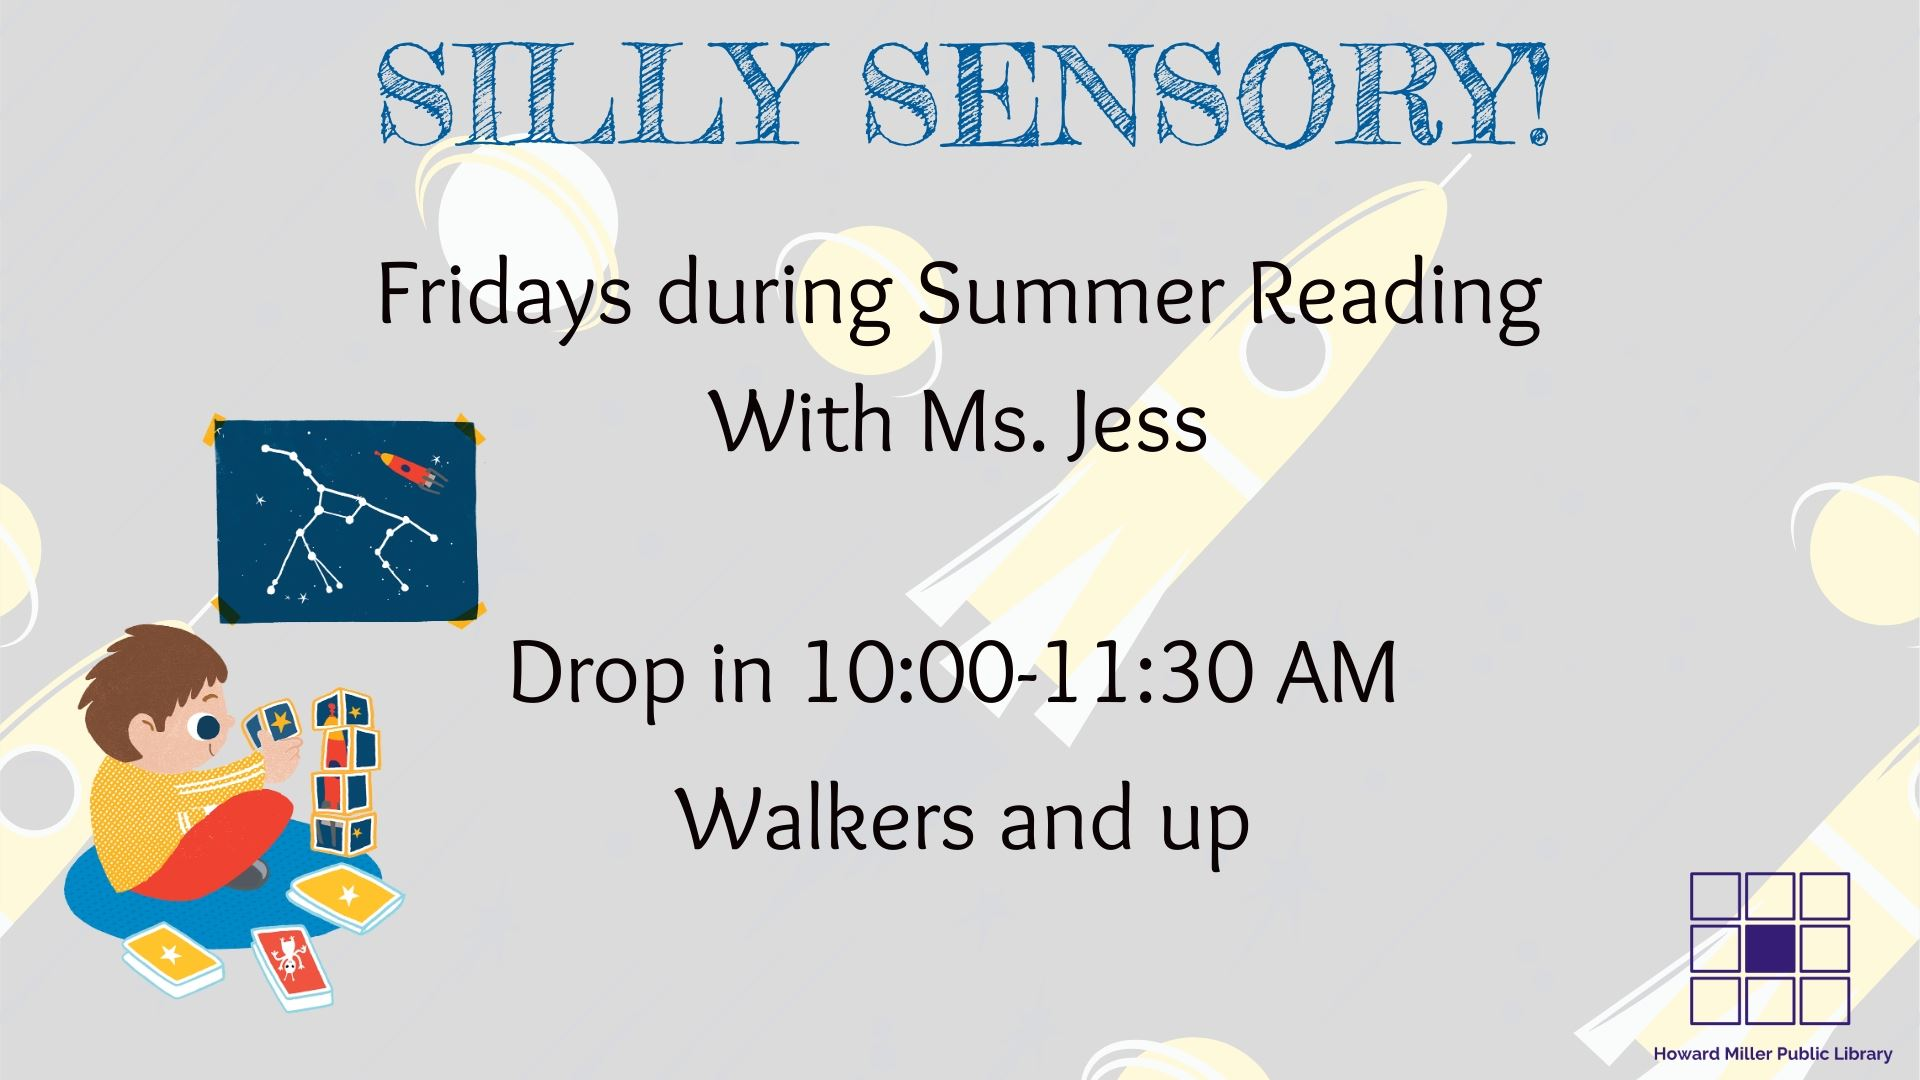 Summer Reading Silly Sensory Friday at 10 AM